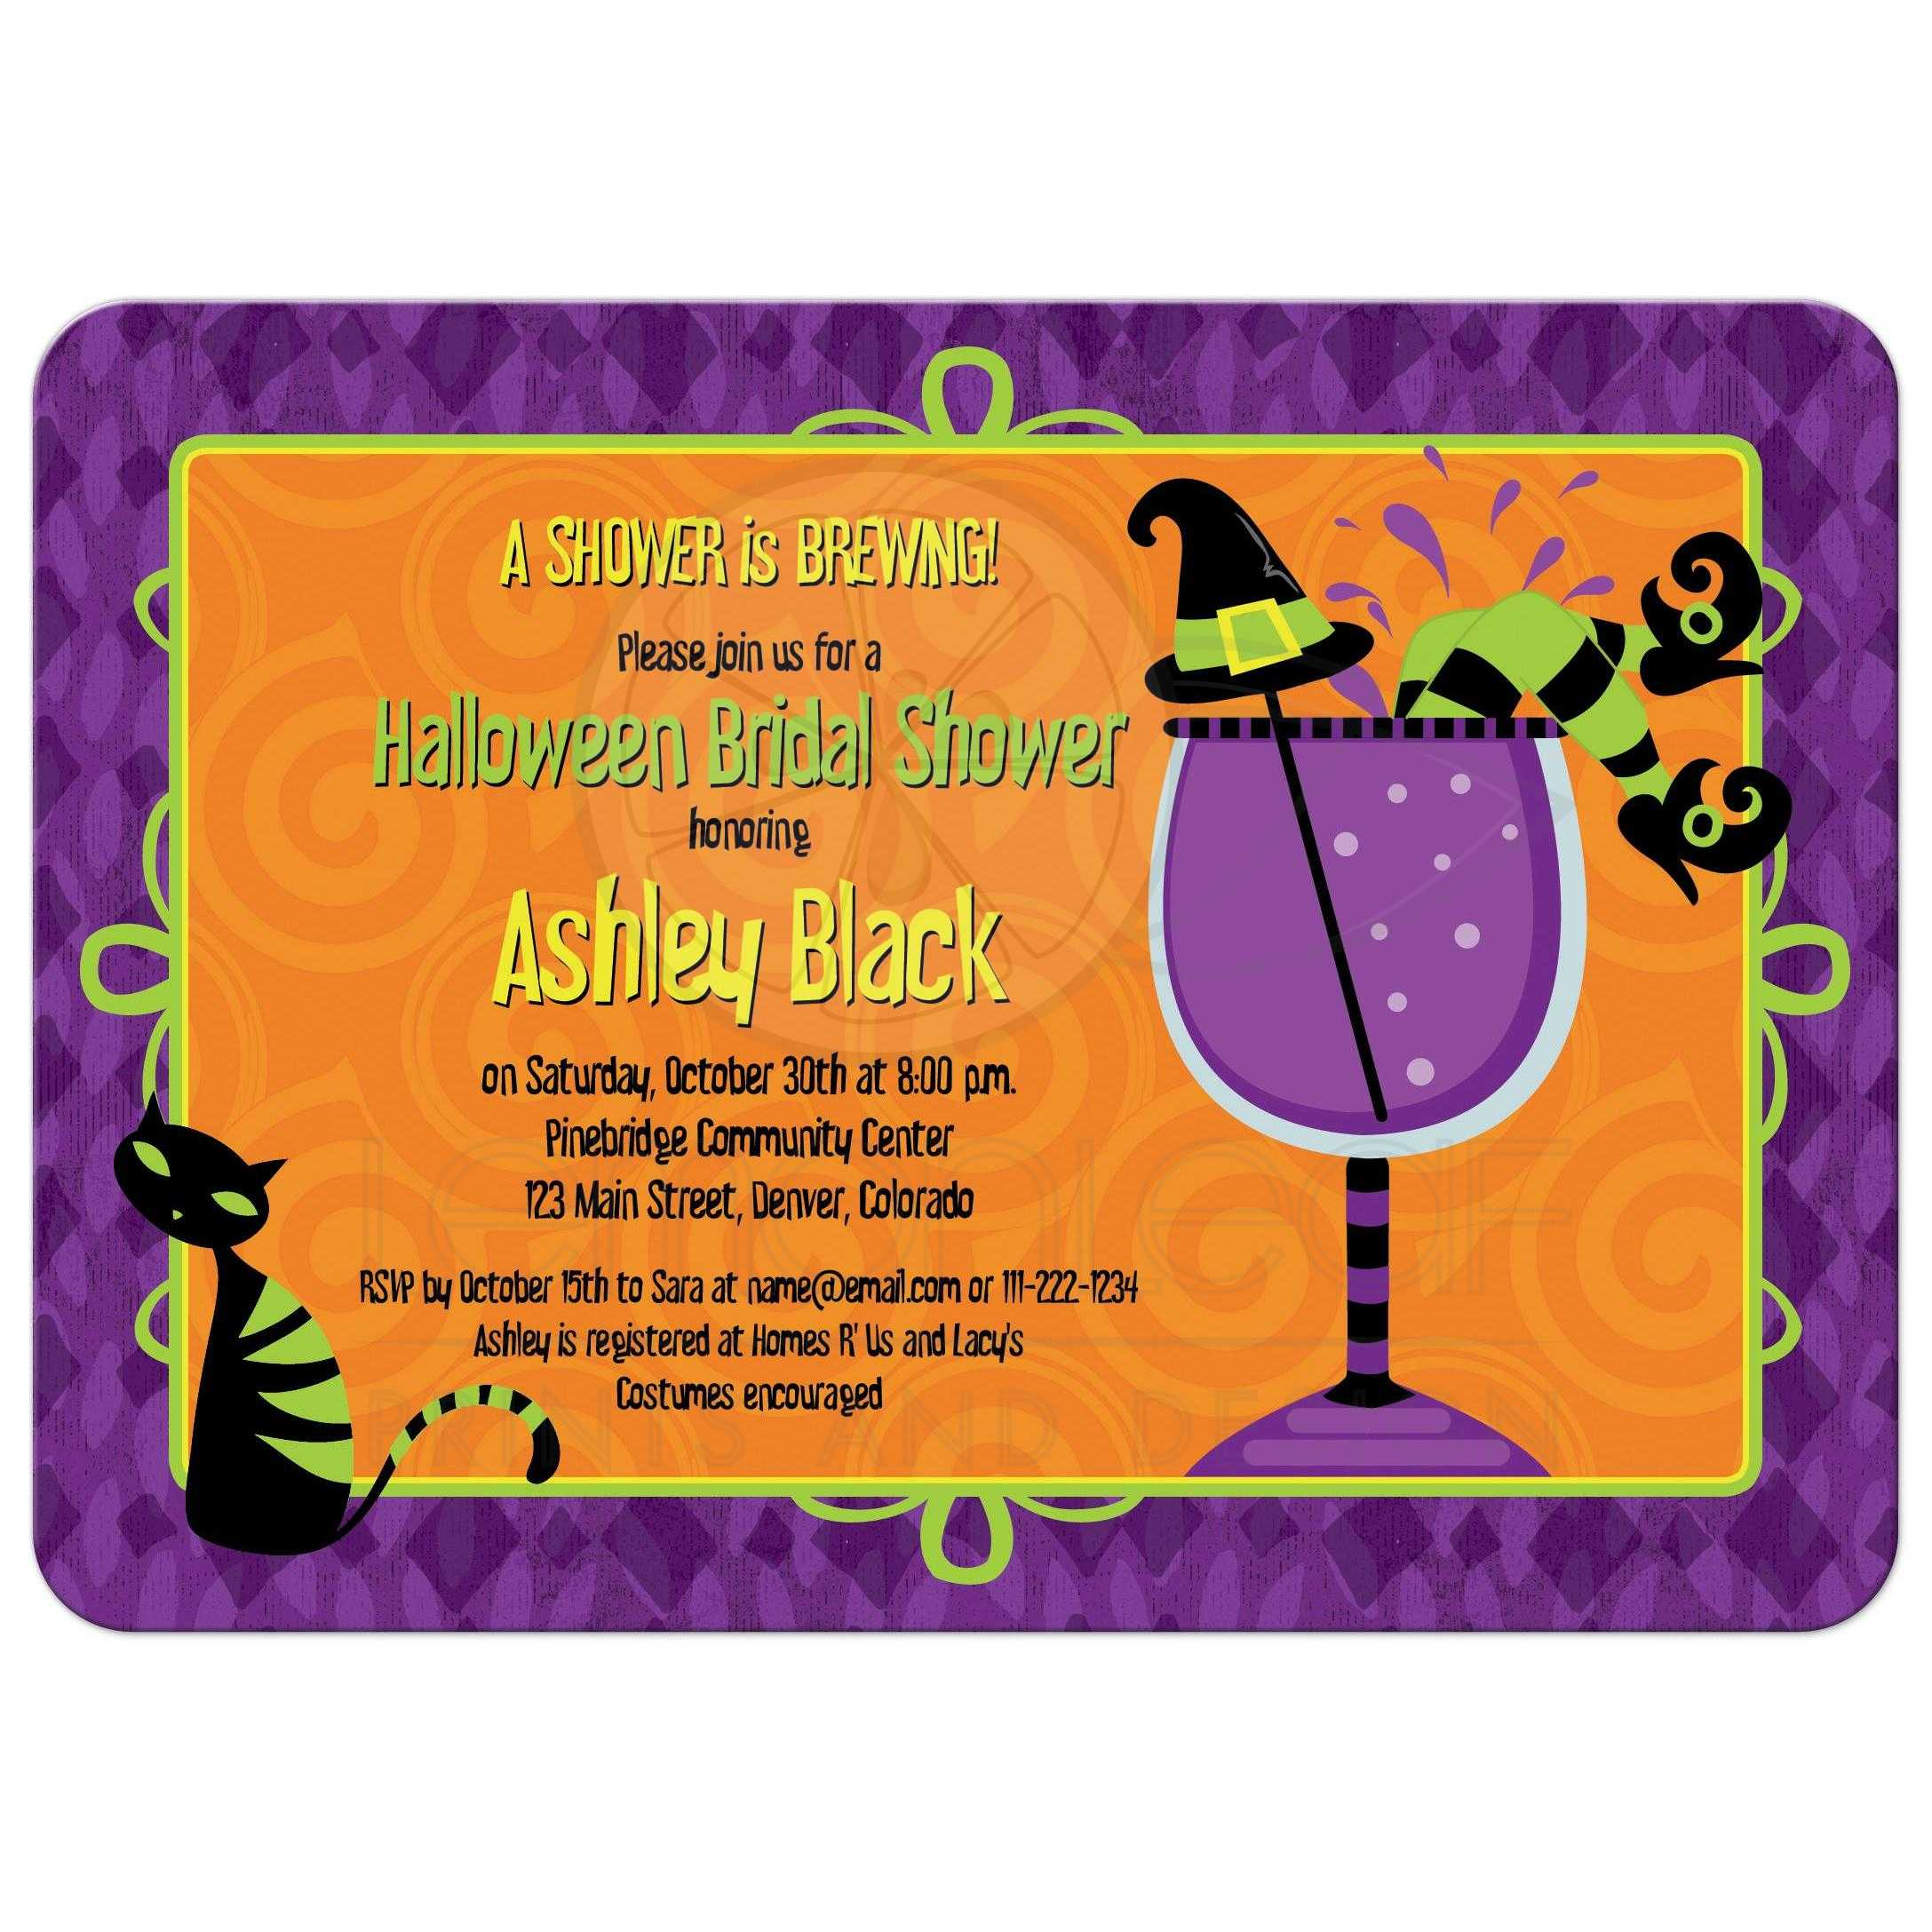 Halloween Bridal Shower Invitation Witches Brew